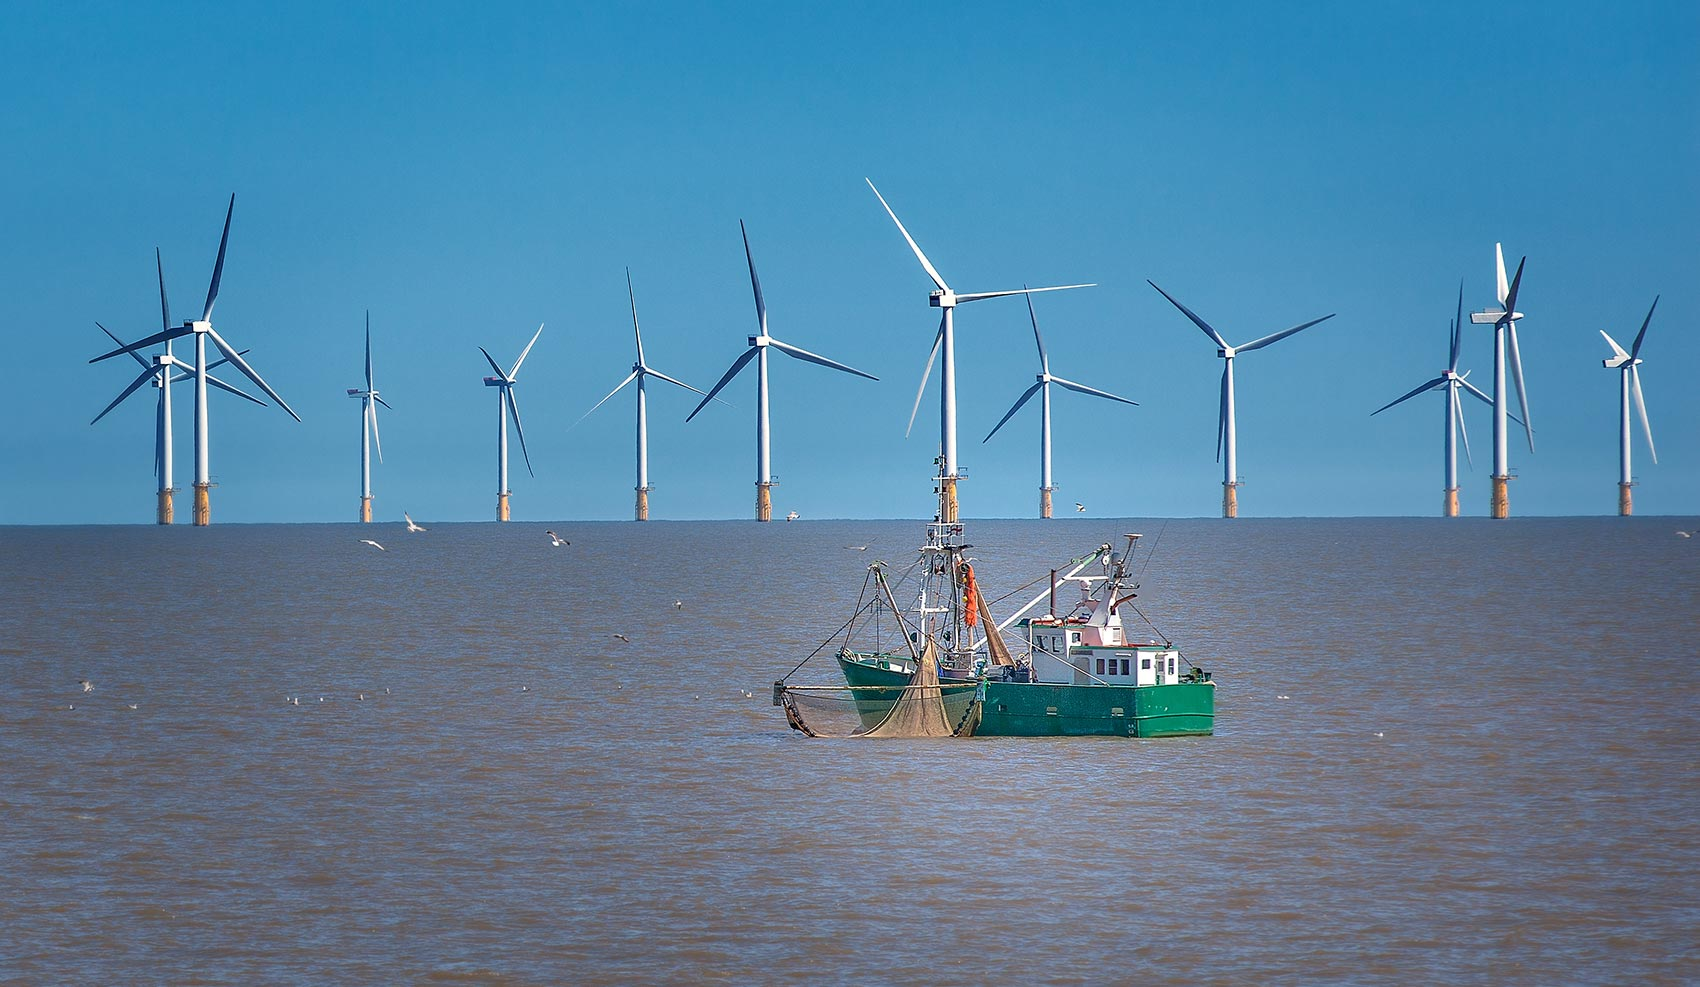 Ship in front of offshore wind farm